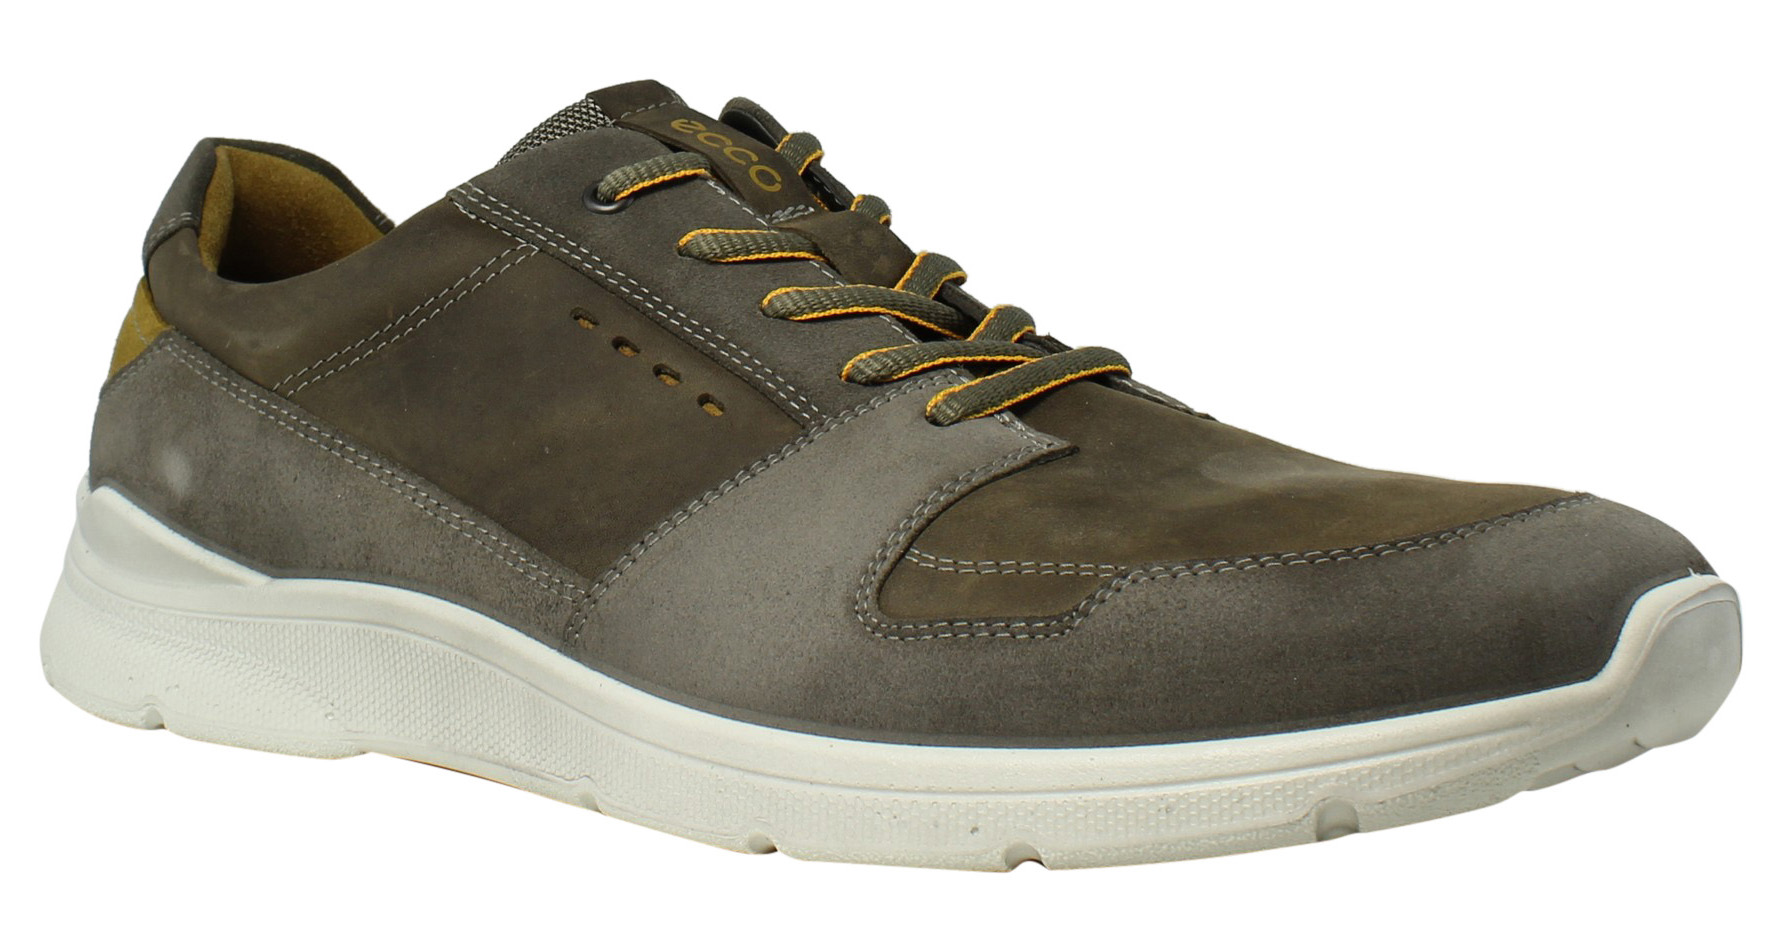 ECCO Mens Irondale WarmGrey Tarmac Fashion Shoes Size 12.5 New by Ecco